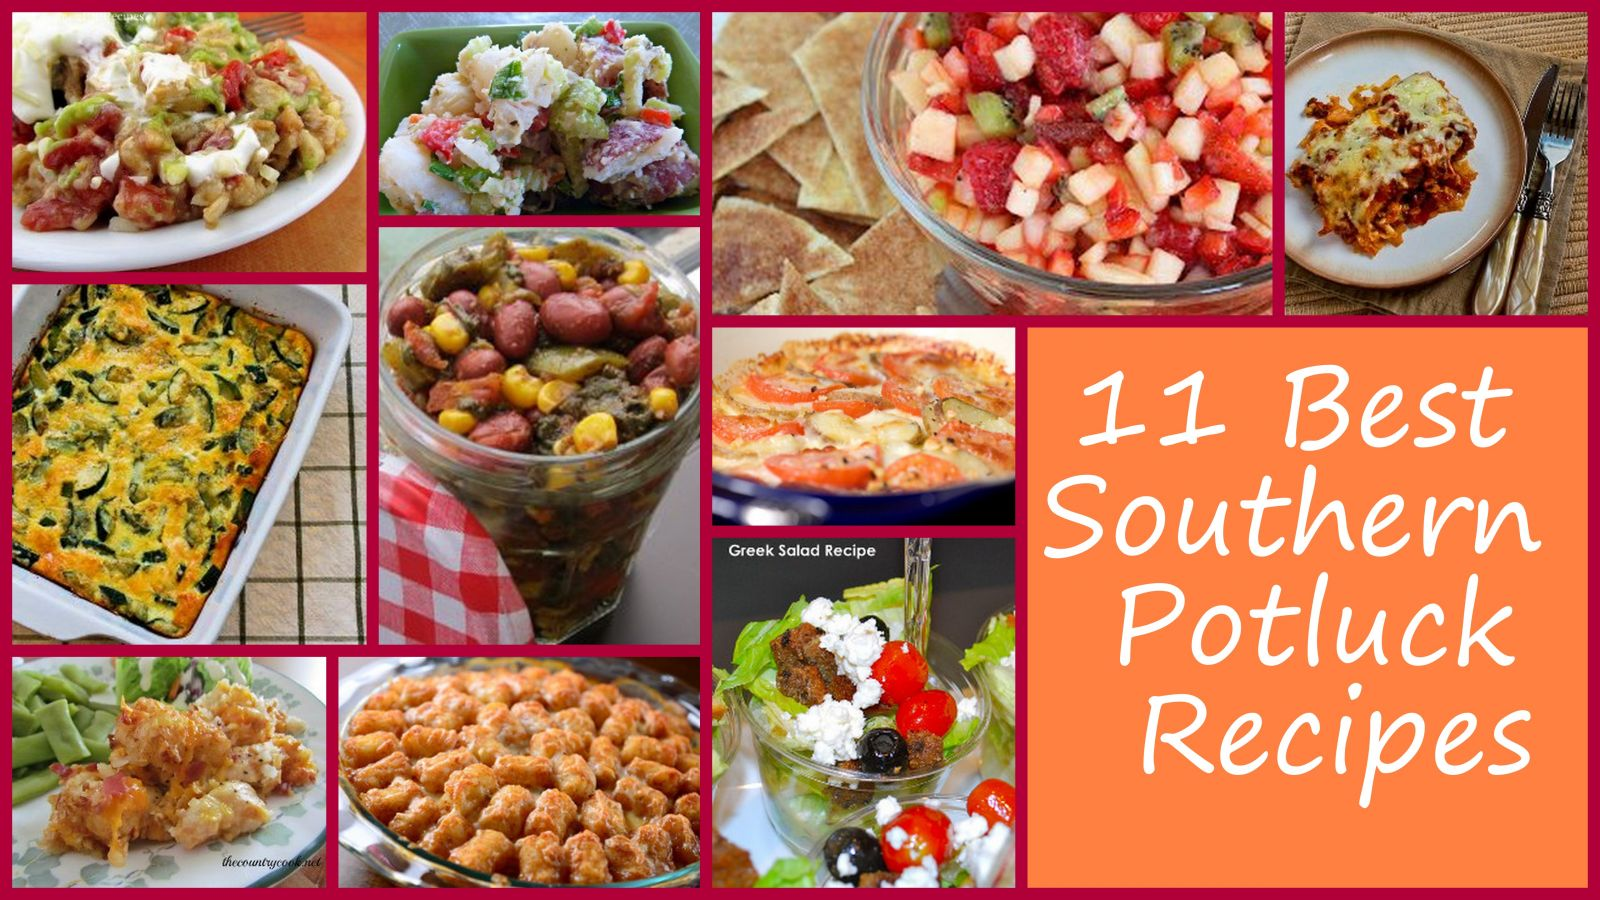 11 best southern potluck recipes | favehealthyrecipes